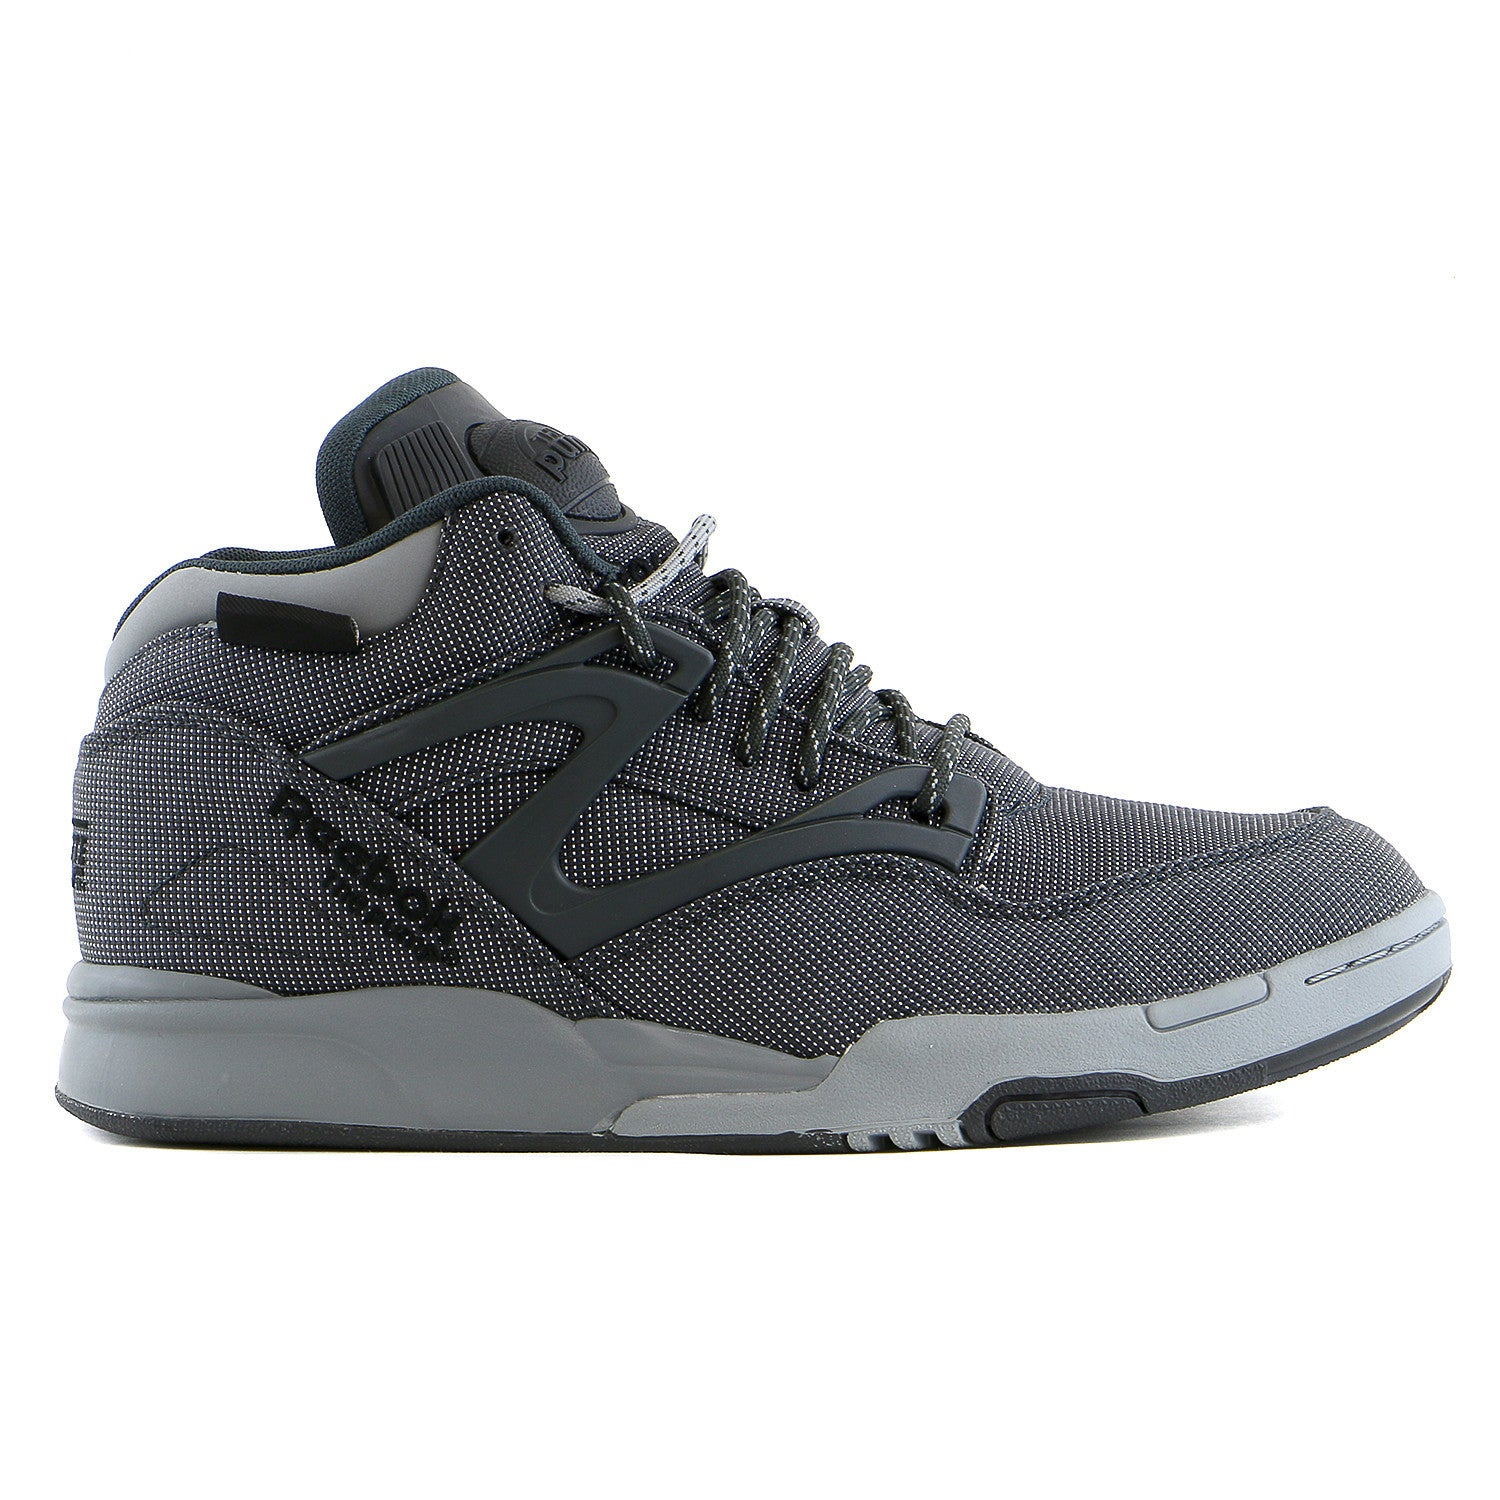 4f269ea558e Reebok Pump Omni Lite Cordura Basketball Fashion Sneaker Shoe - Mens -  Shoplifestyle